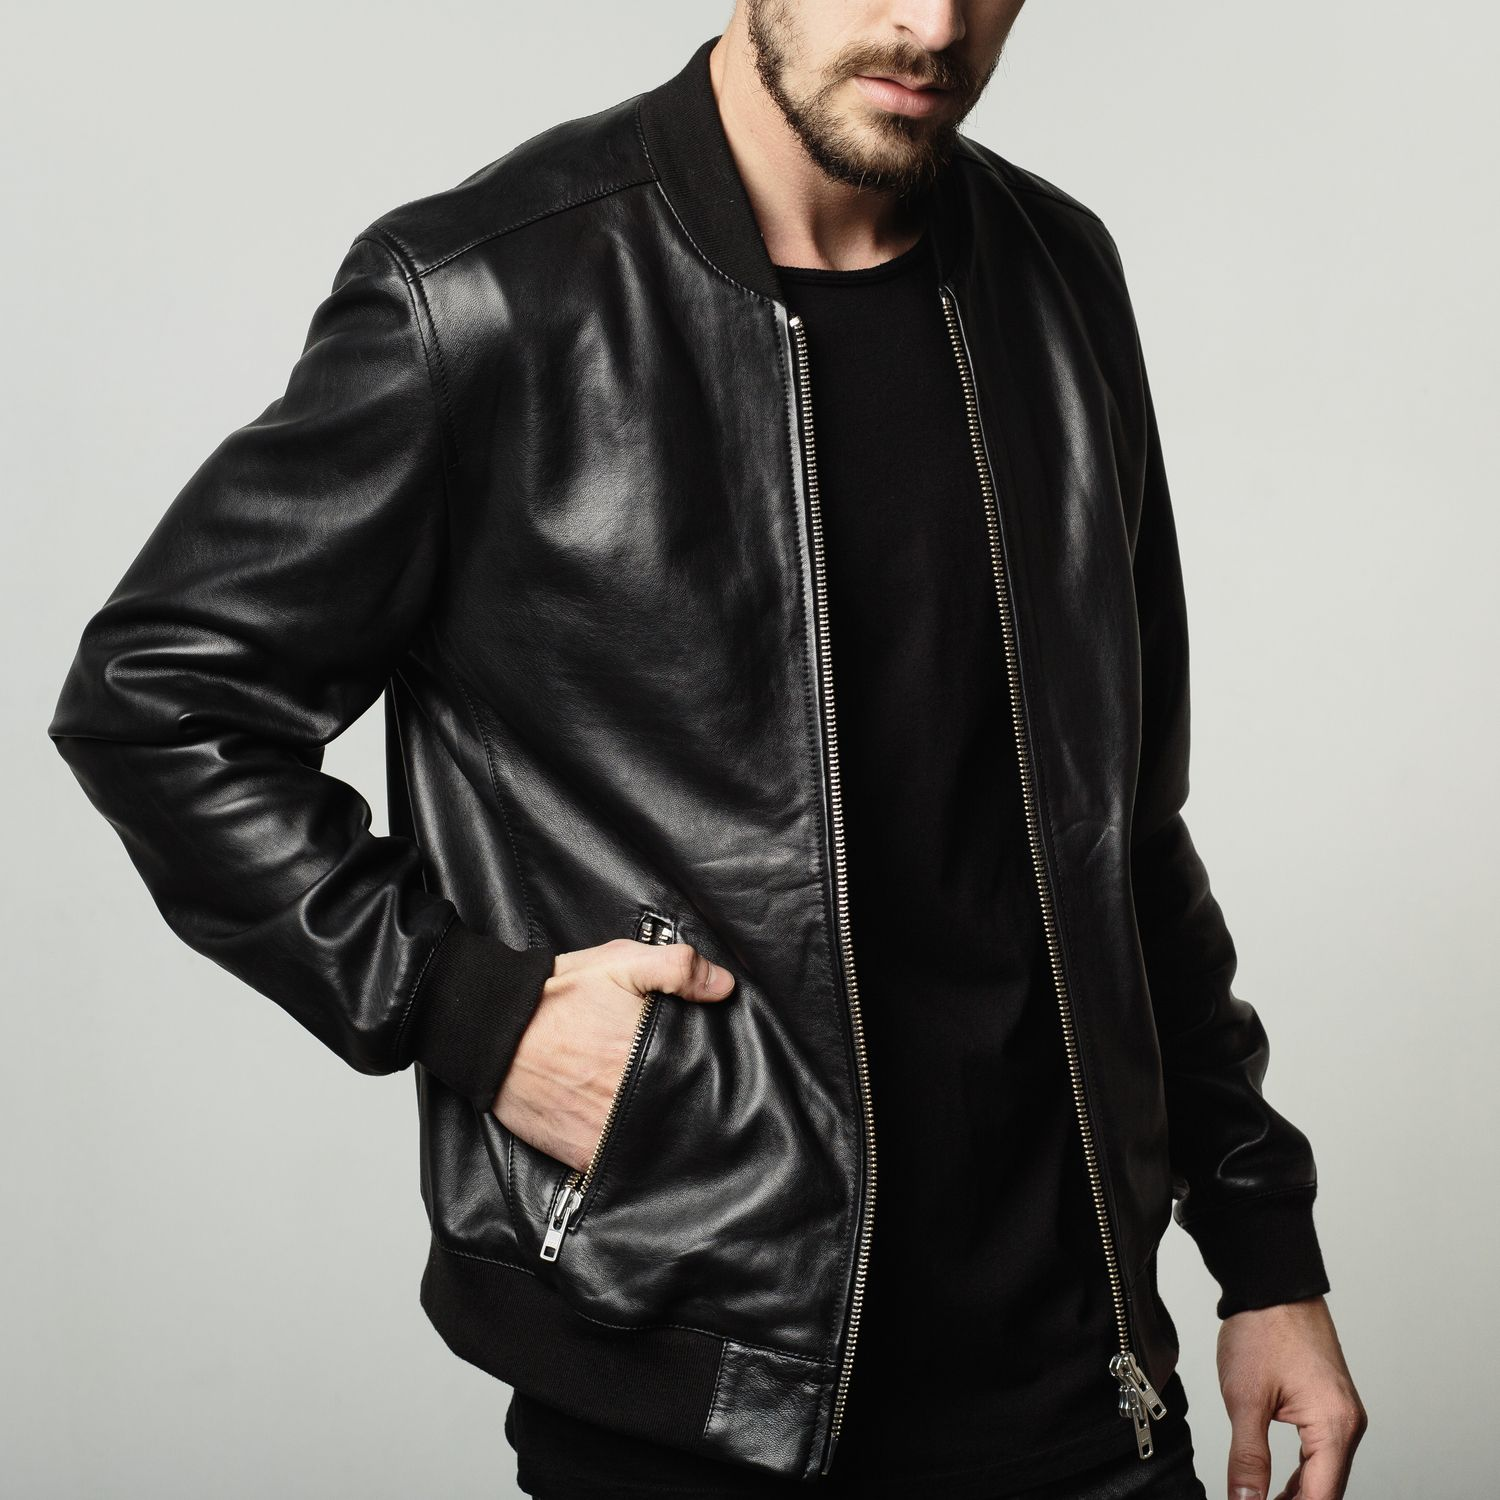 [Bomber Jacket] Leather Bomber Jacket in Black in 2020